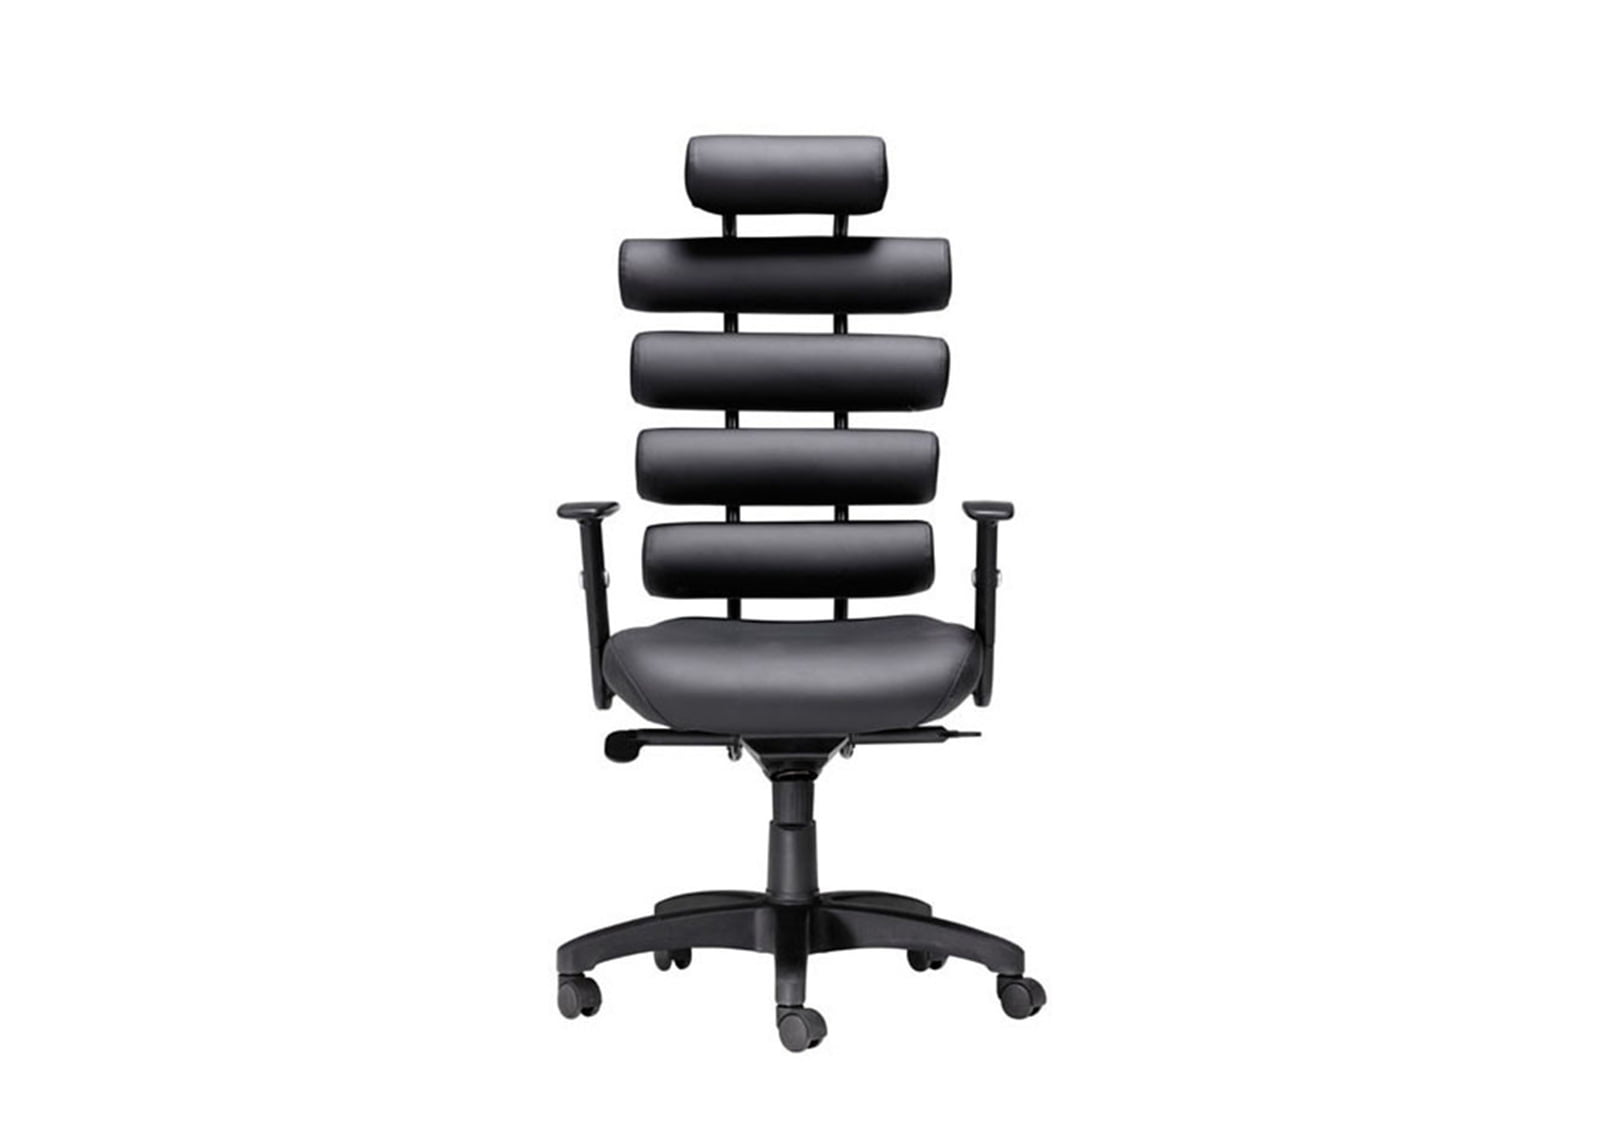 unico office chair. Delighful Chair Unico Office Chair Black To